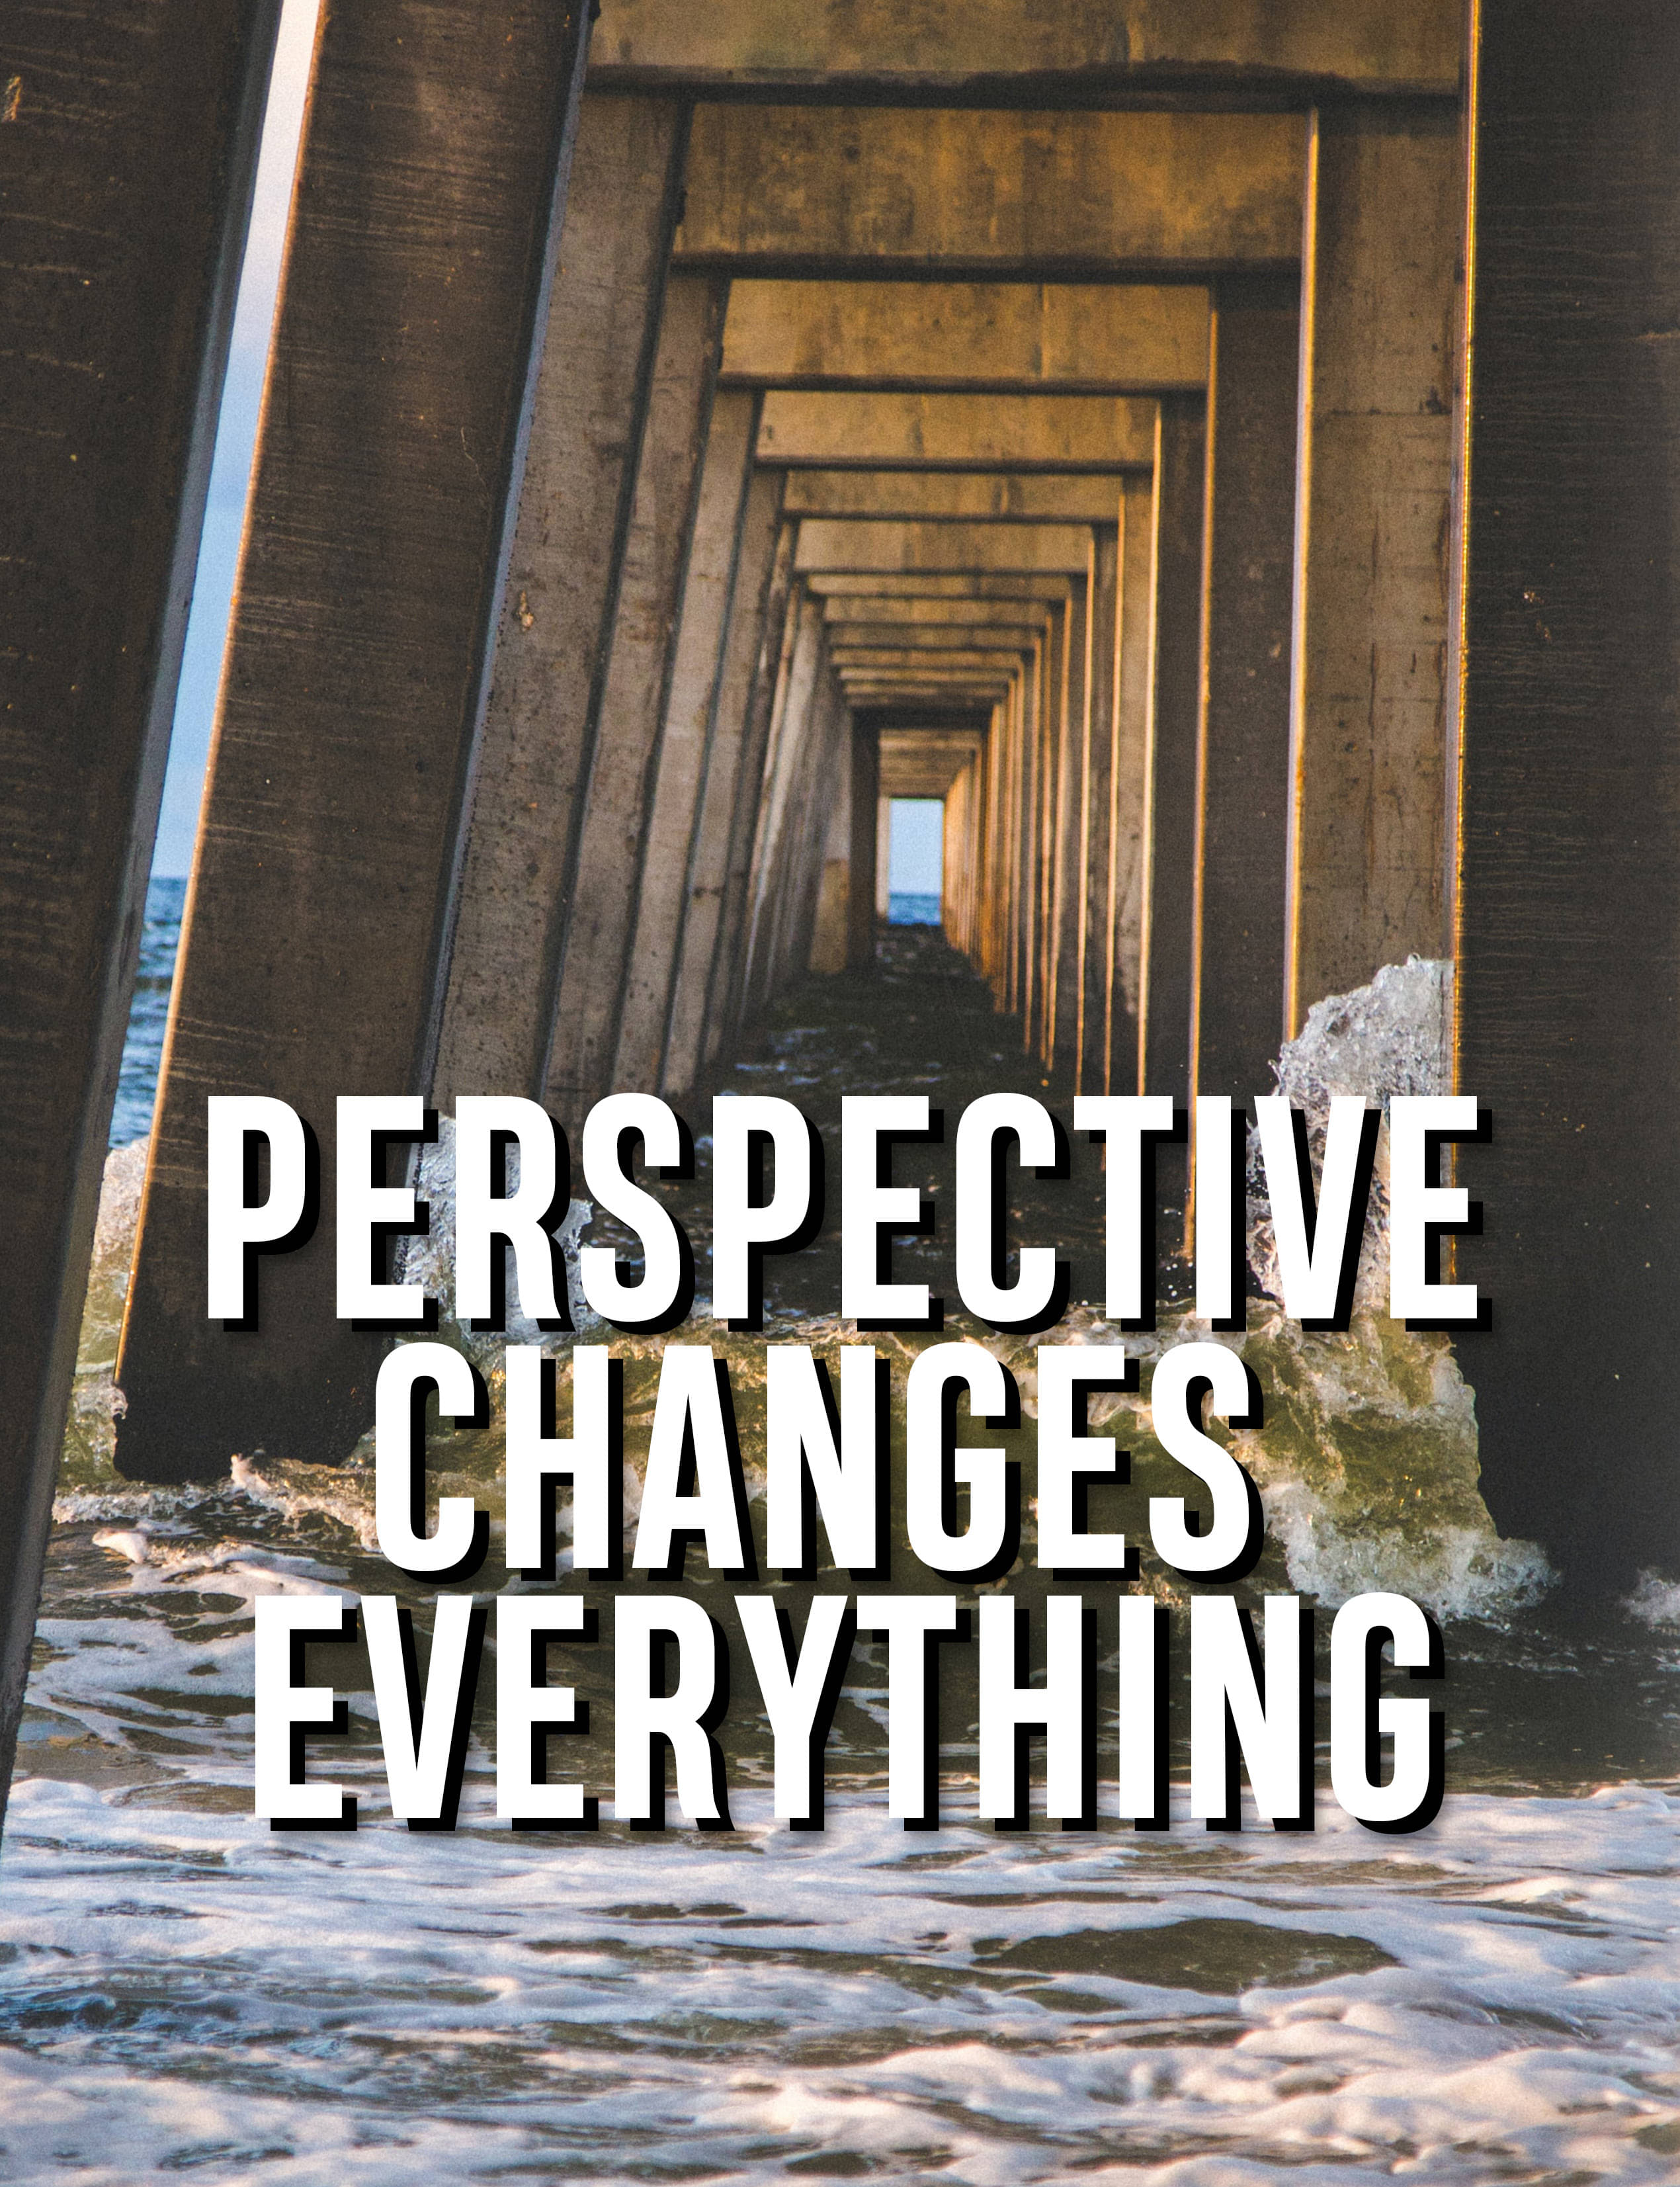 PERSPECTIVE CHANGES EVERYTHING